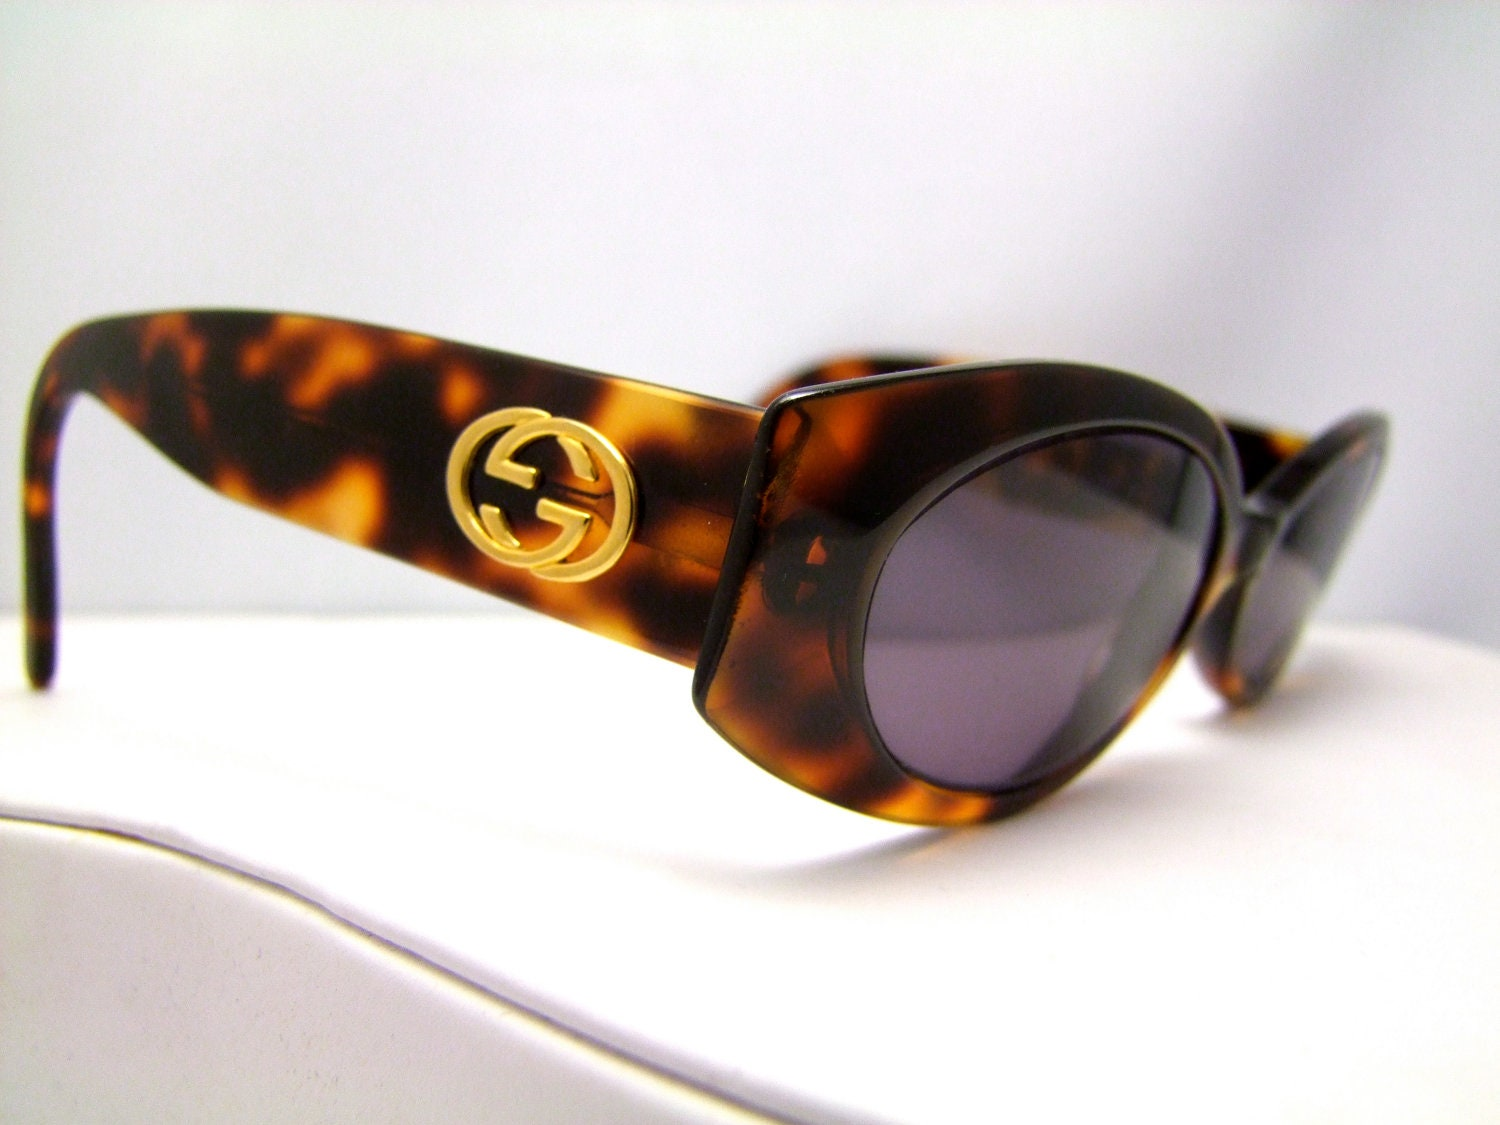 Vintage Gucci Glasses Frame : Vintage Gucci Eyeglasses Made in Italy Style 2954 by ...